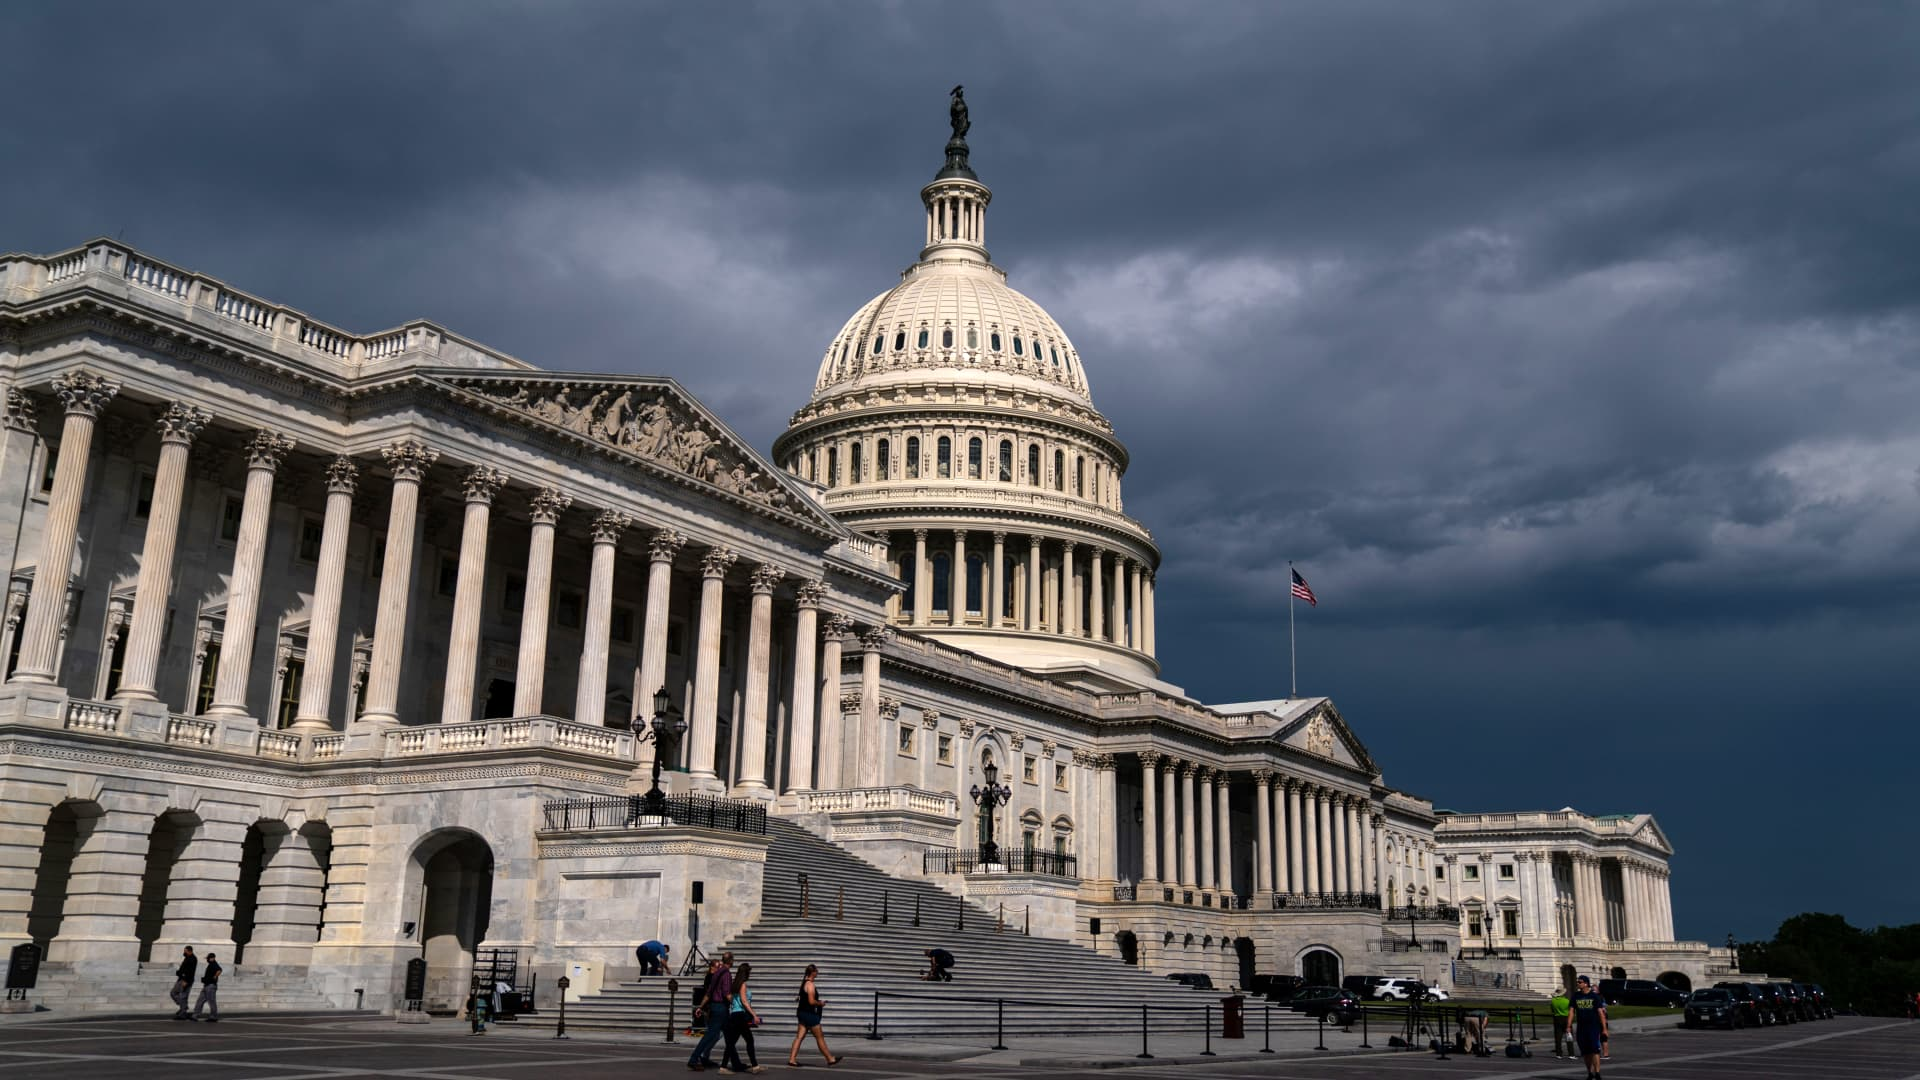 The U.S. Capitol, photographed on Tuesday, Sept. 28, 2021 in Washington, DC.